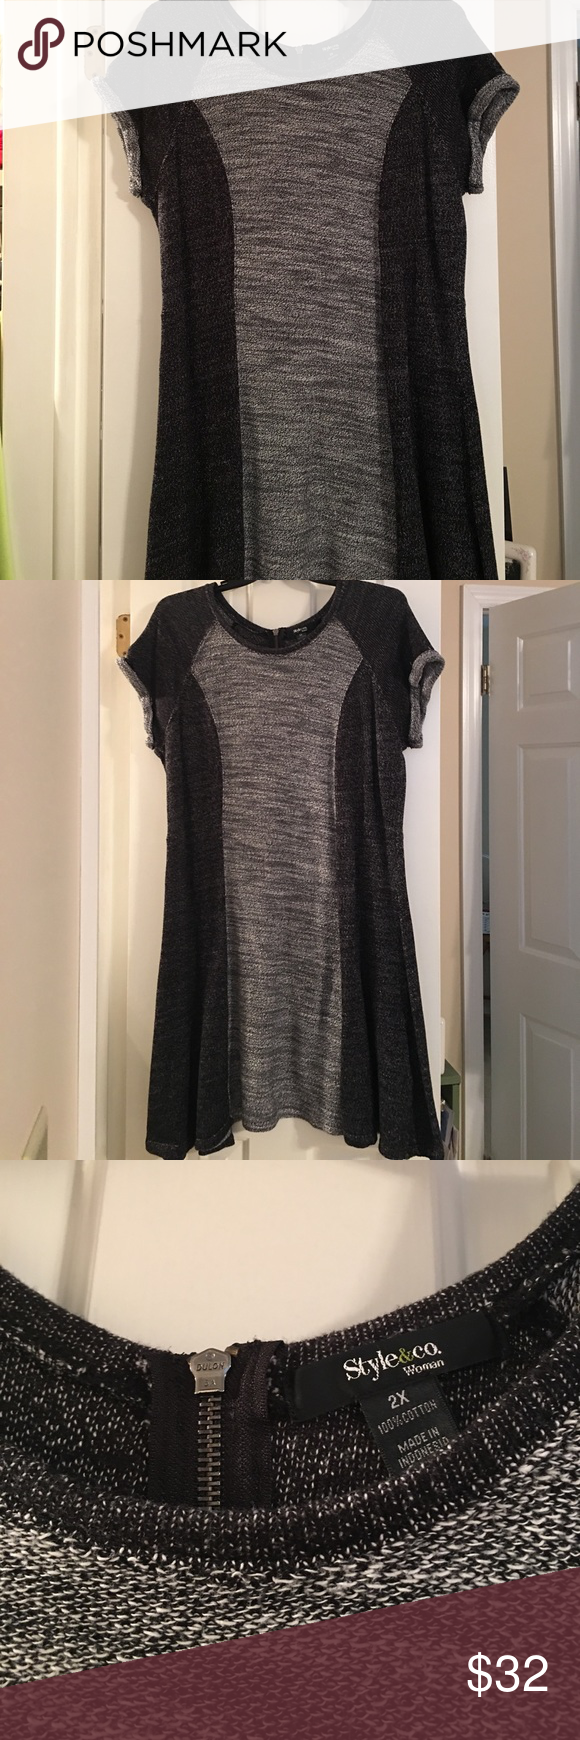 Styleuco casual dress comfy and conditioning